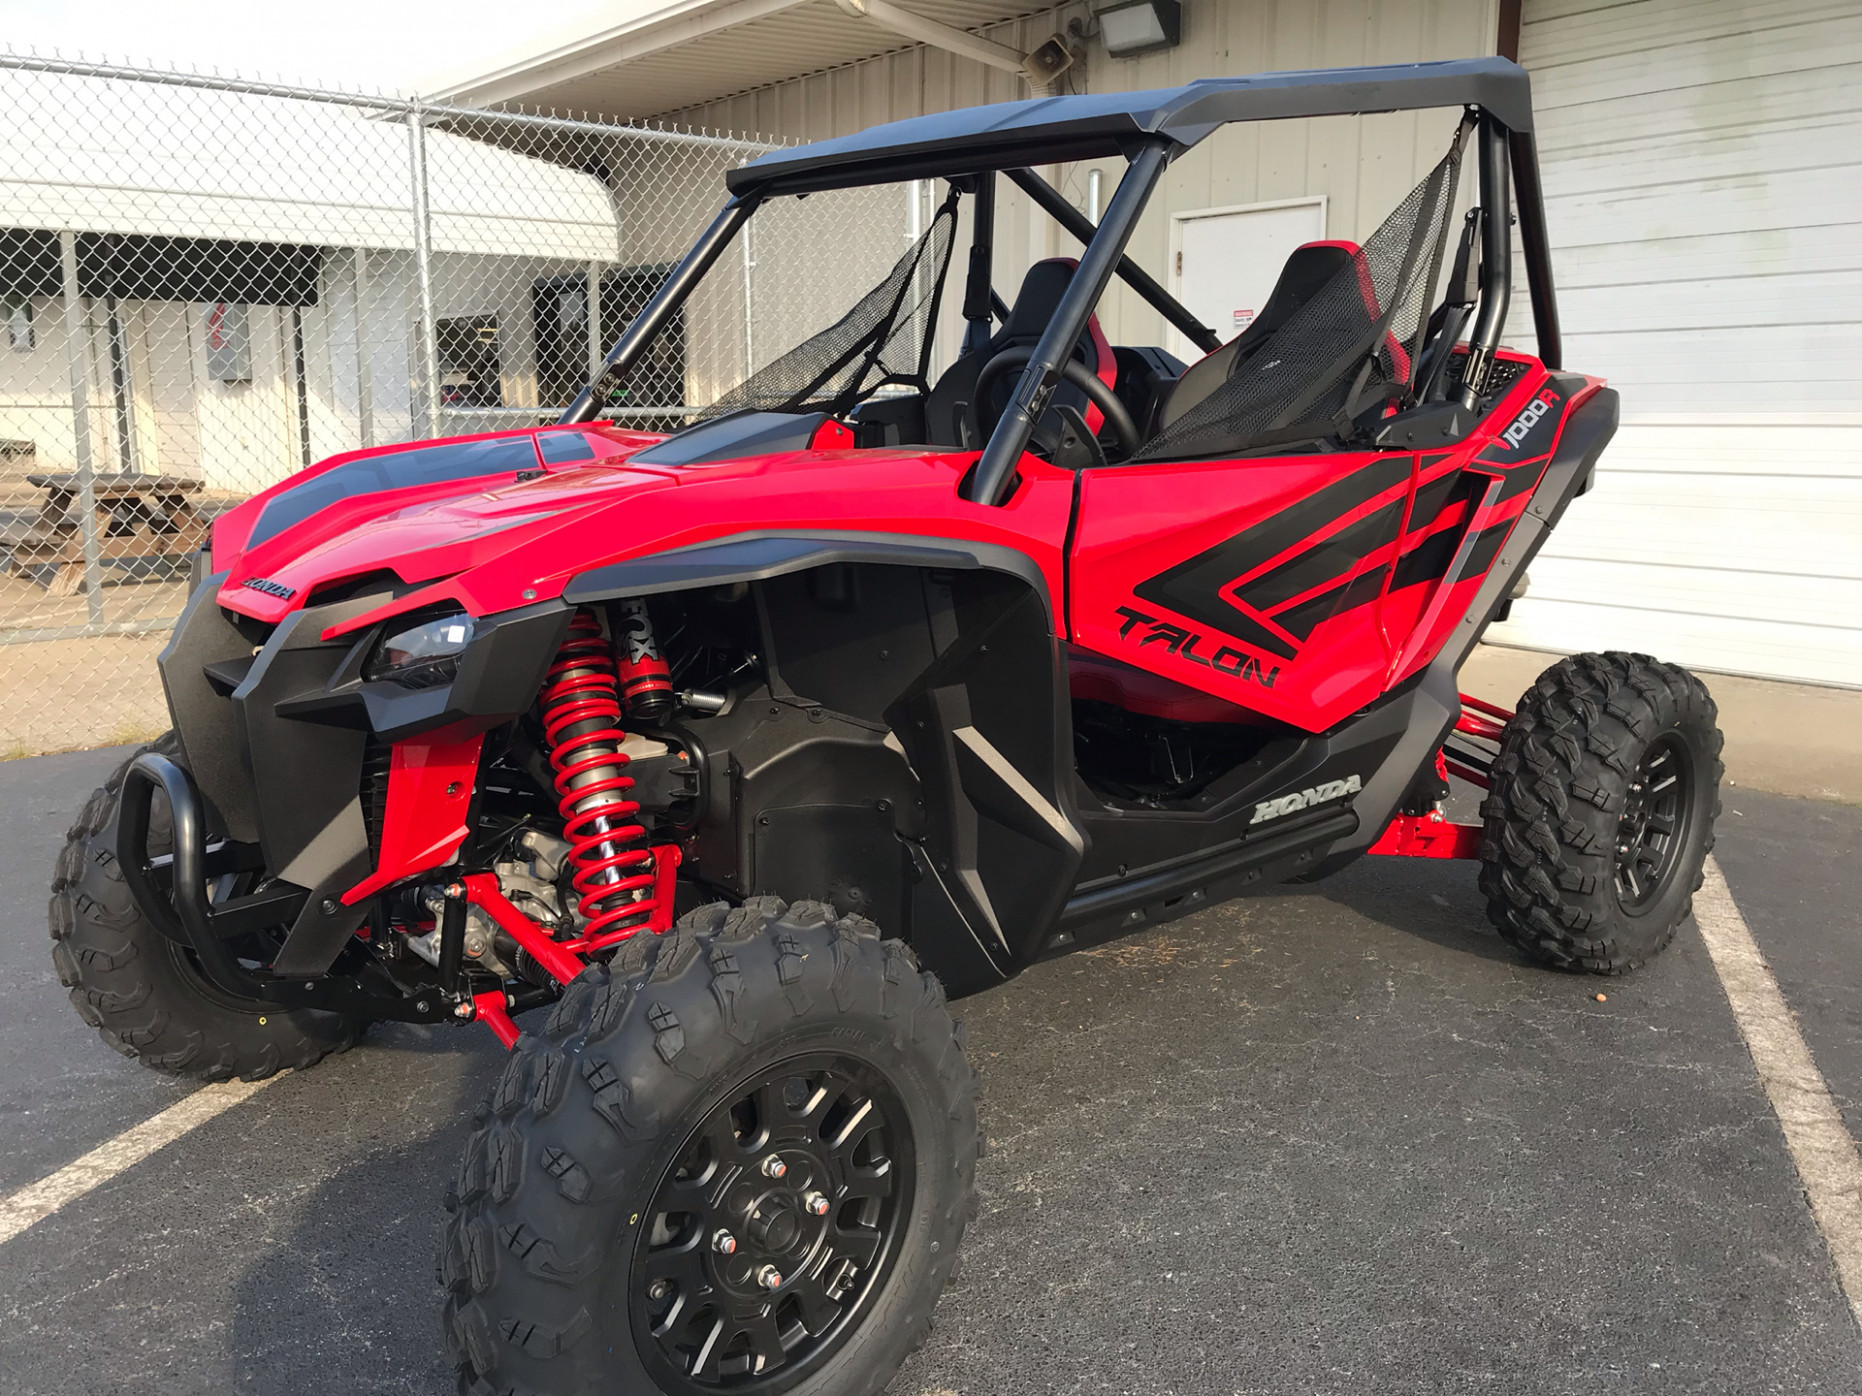 8 Honda Talon 8R in Sanford, North Carolina - 2020 honda talon 1000r